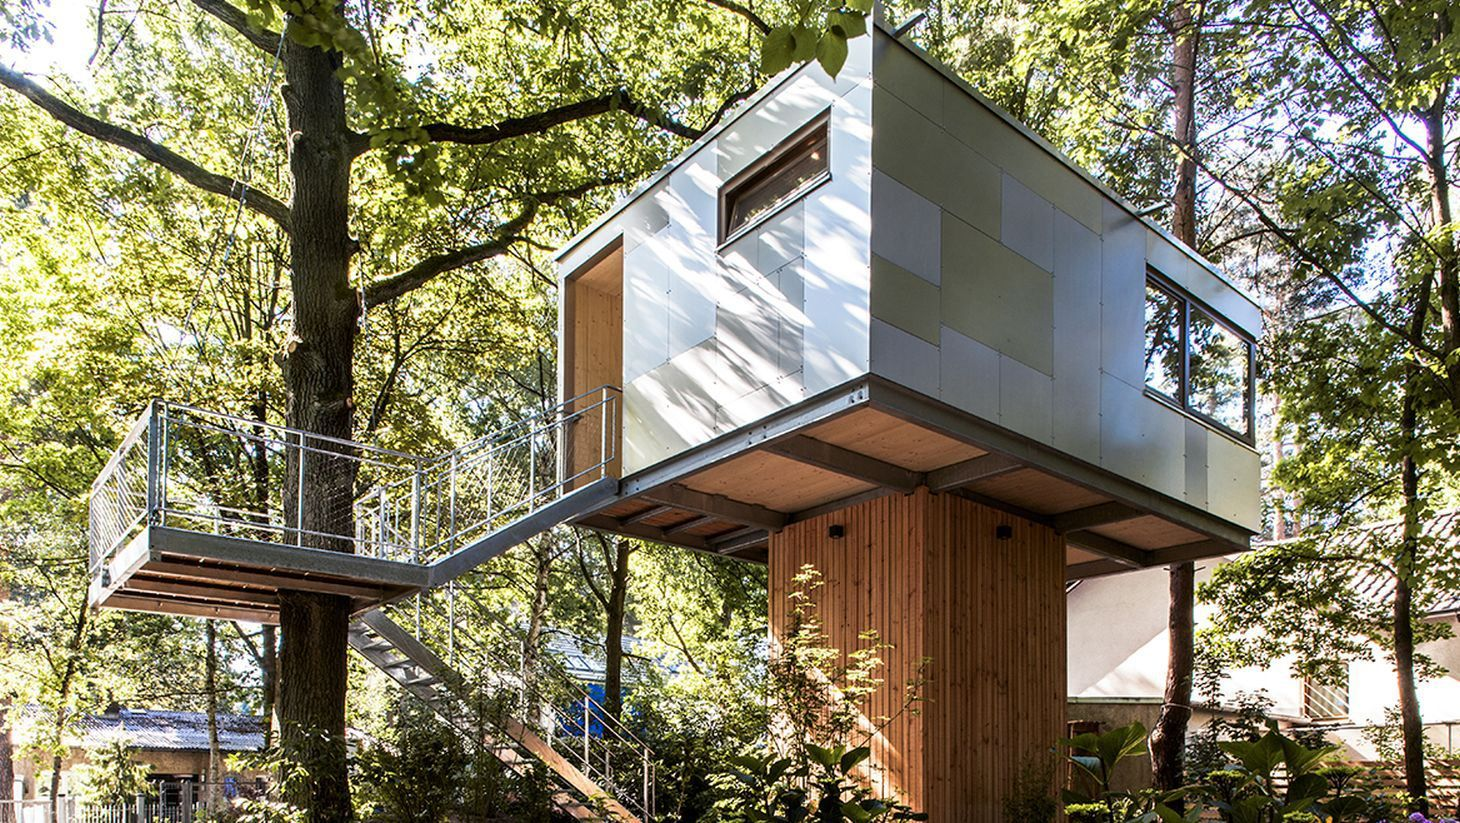 tile-covered industrial-style treehouse, suspended on a wooden platform, two windows and a door, accessible through a staircase, built around a nearby tree